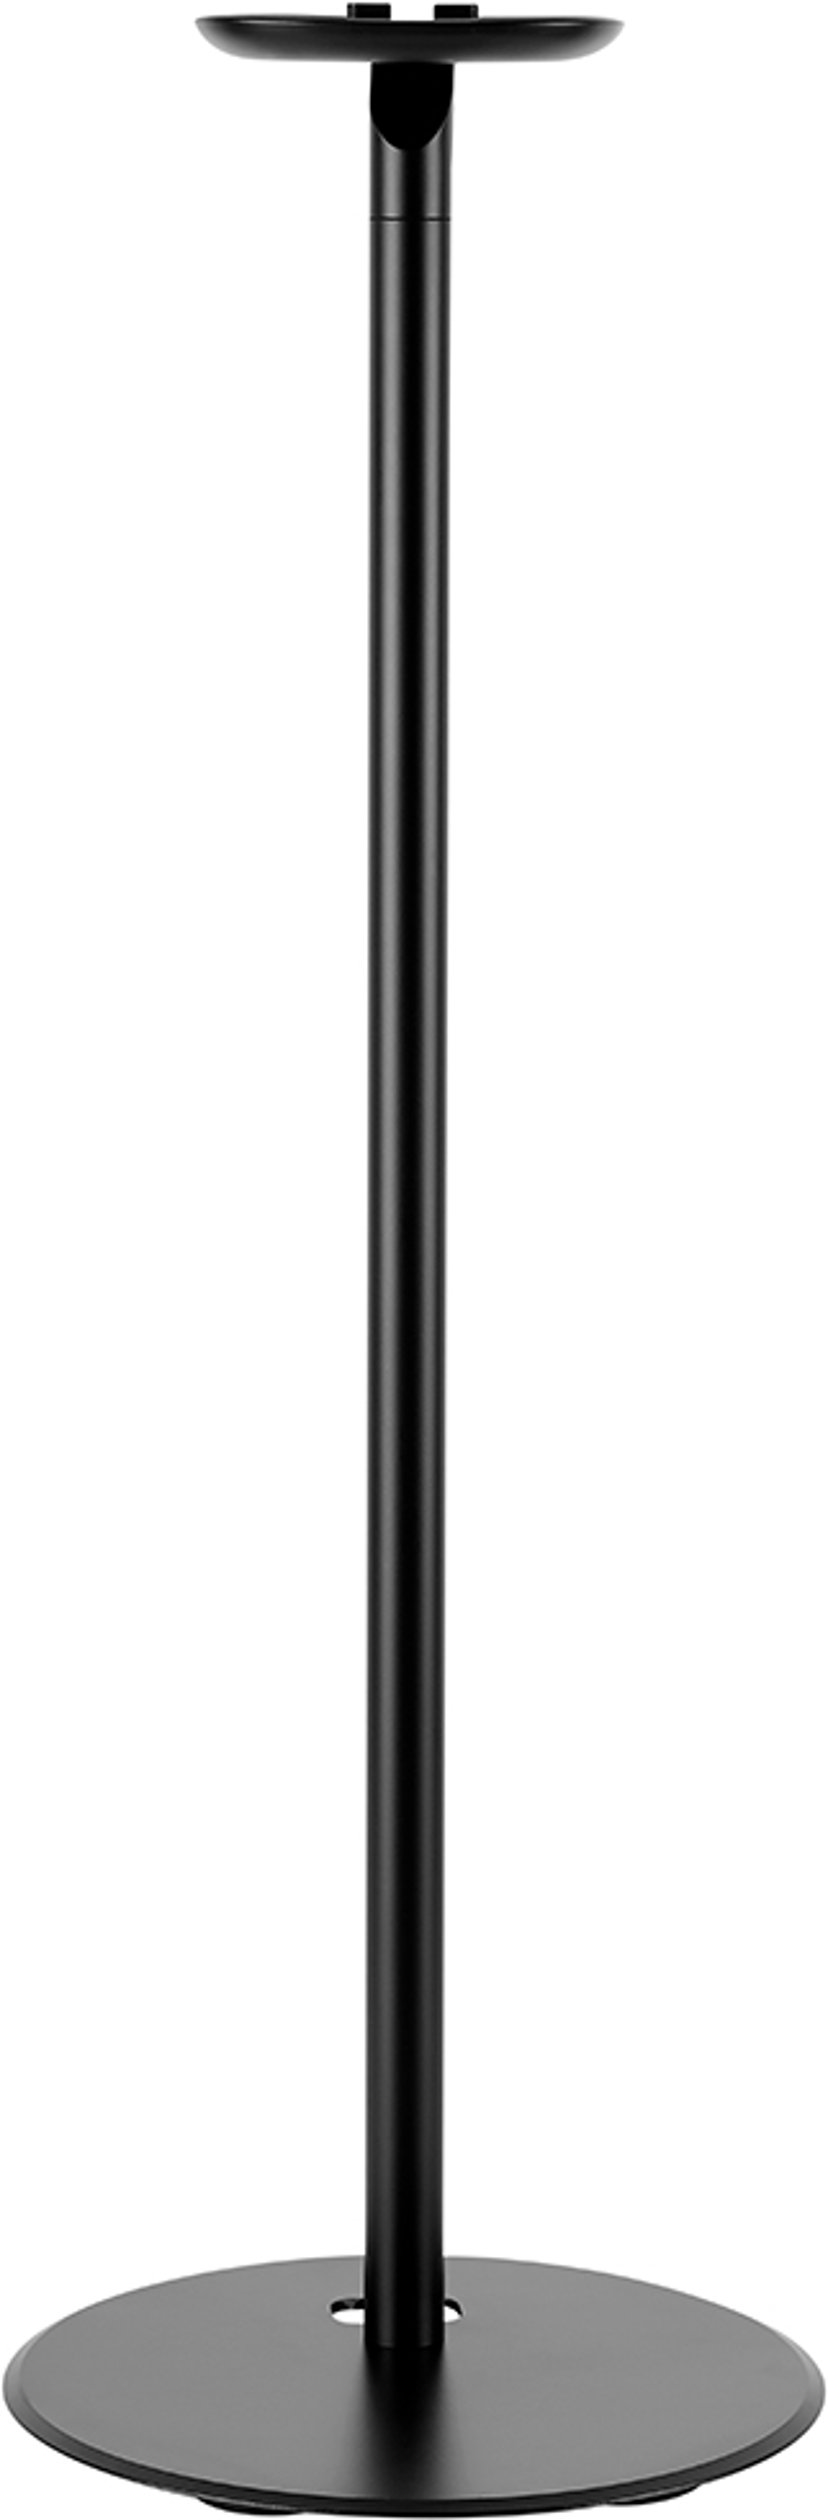 Prokord Floor stand for SONOS ONE, SONOS ONE SL AND SONOS PLAY:1